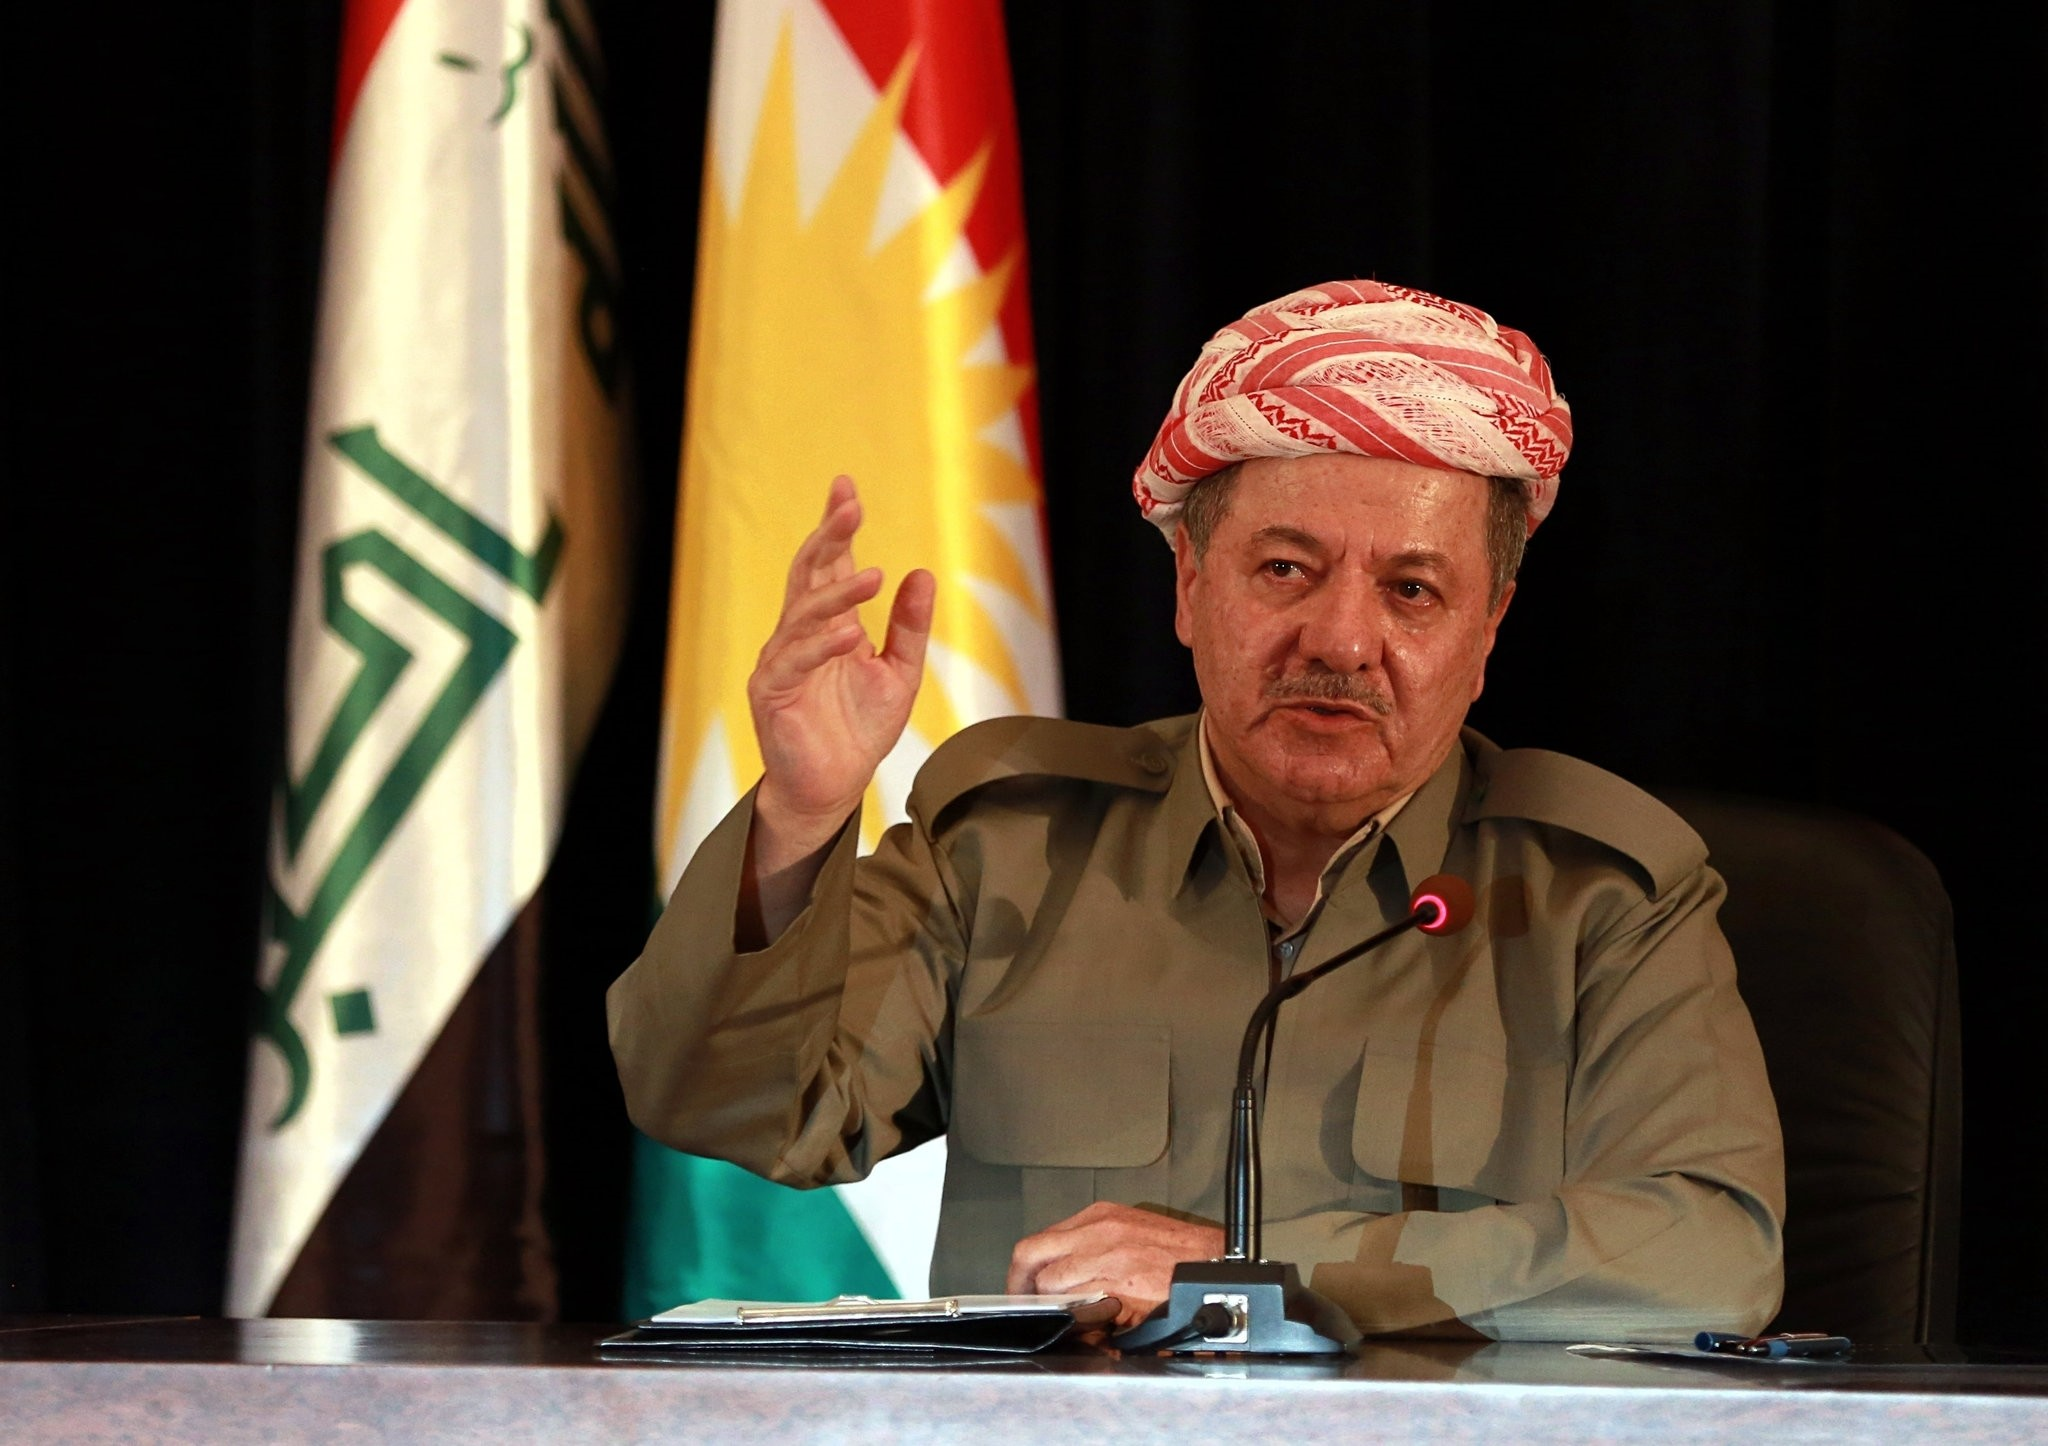 In this Sunday, Sept. 24, 2017 file photo, the leader of Iraq's autonomous Kurdish region, Massoud Barzani, speaks to reporters during a press conference in Irbil, Iraq, Sunday, Sept. 24, 2017. (AP Photo)